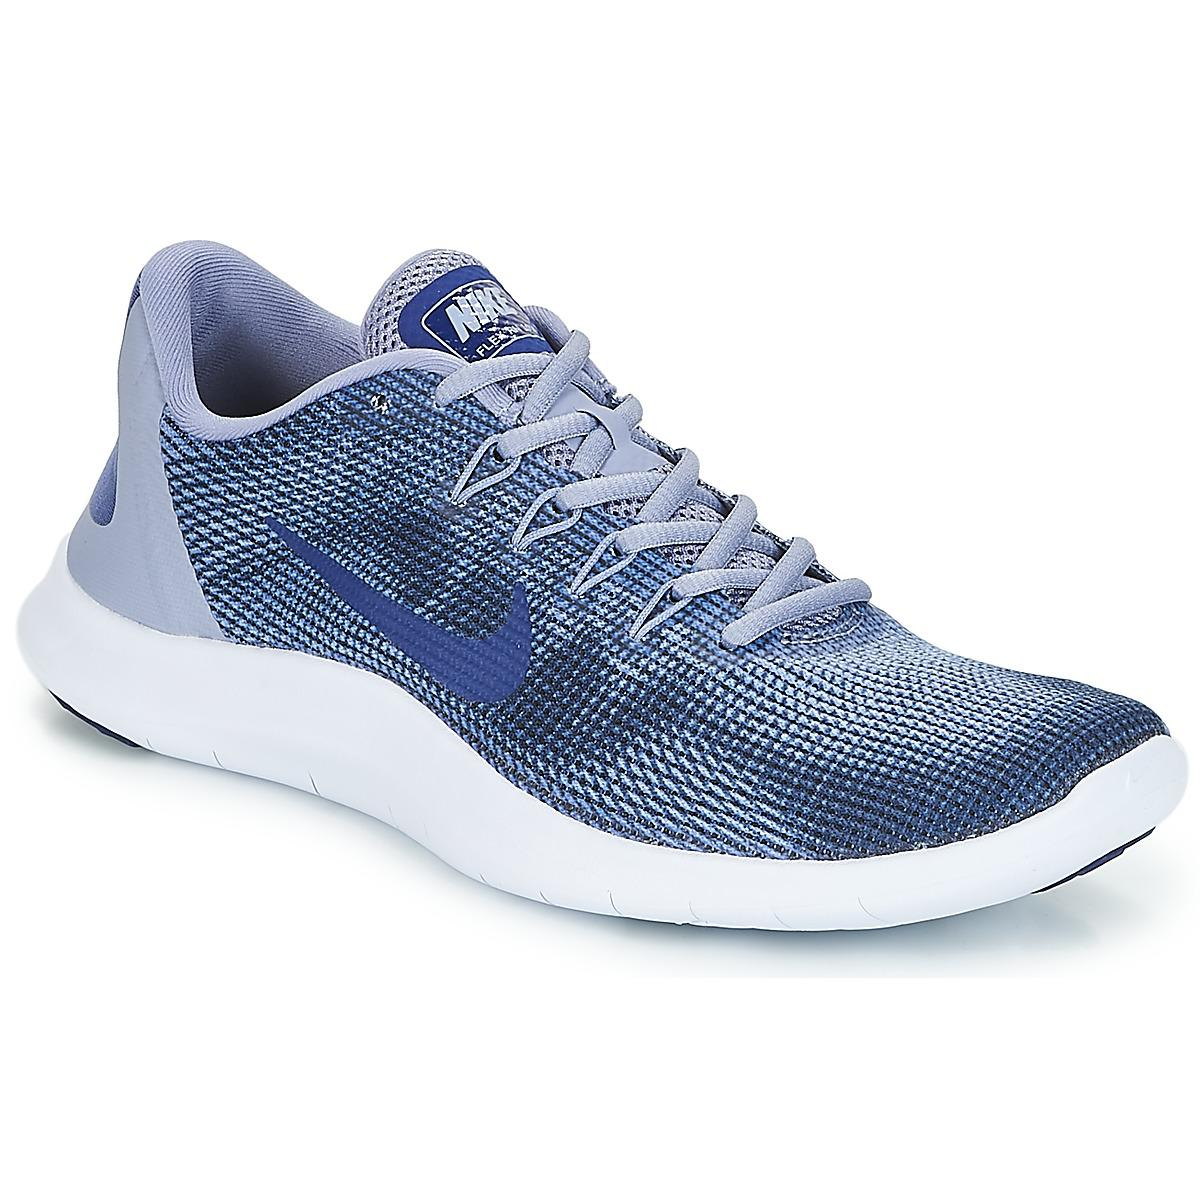 3787a490474 Nike Flex Run 2018 Running Trainers in Blue for Men - Save 17% - Lyst